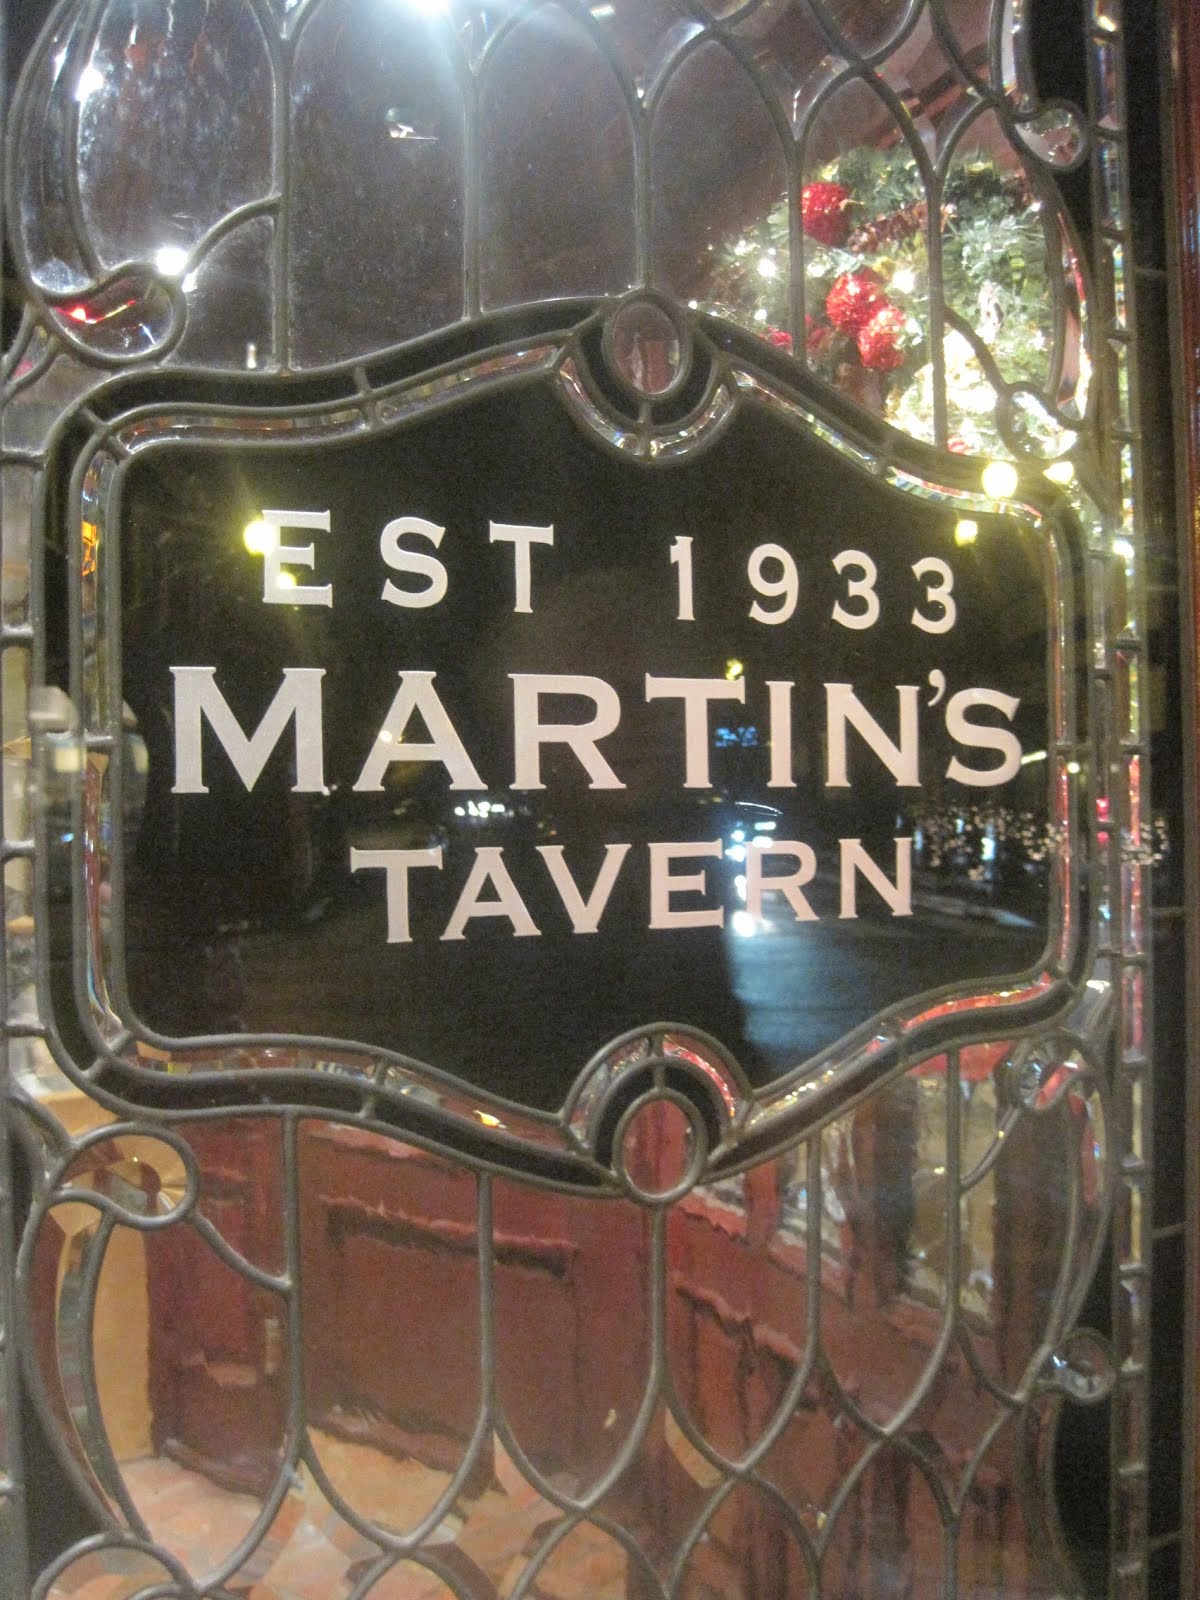 Martin's Tavern, Est. 1933 Georgetown, Washington, D.C.